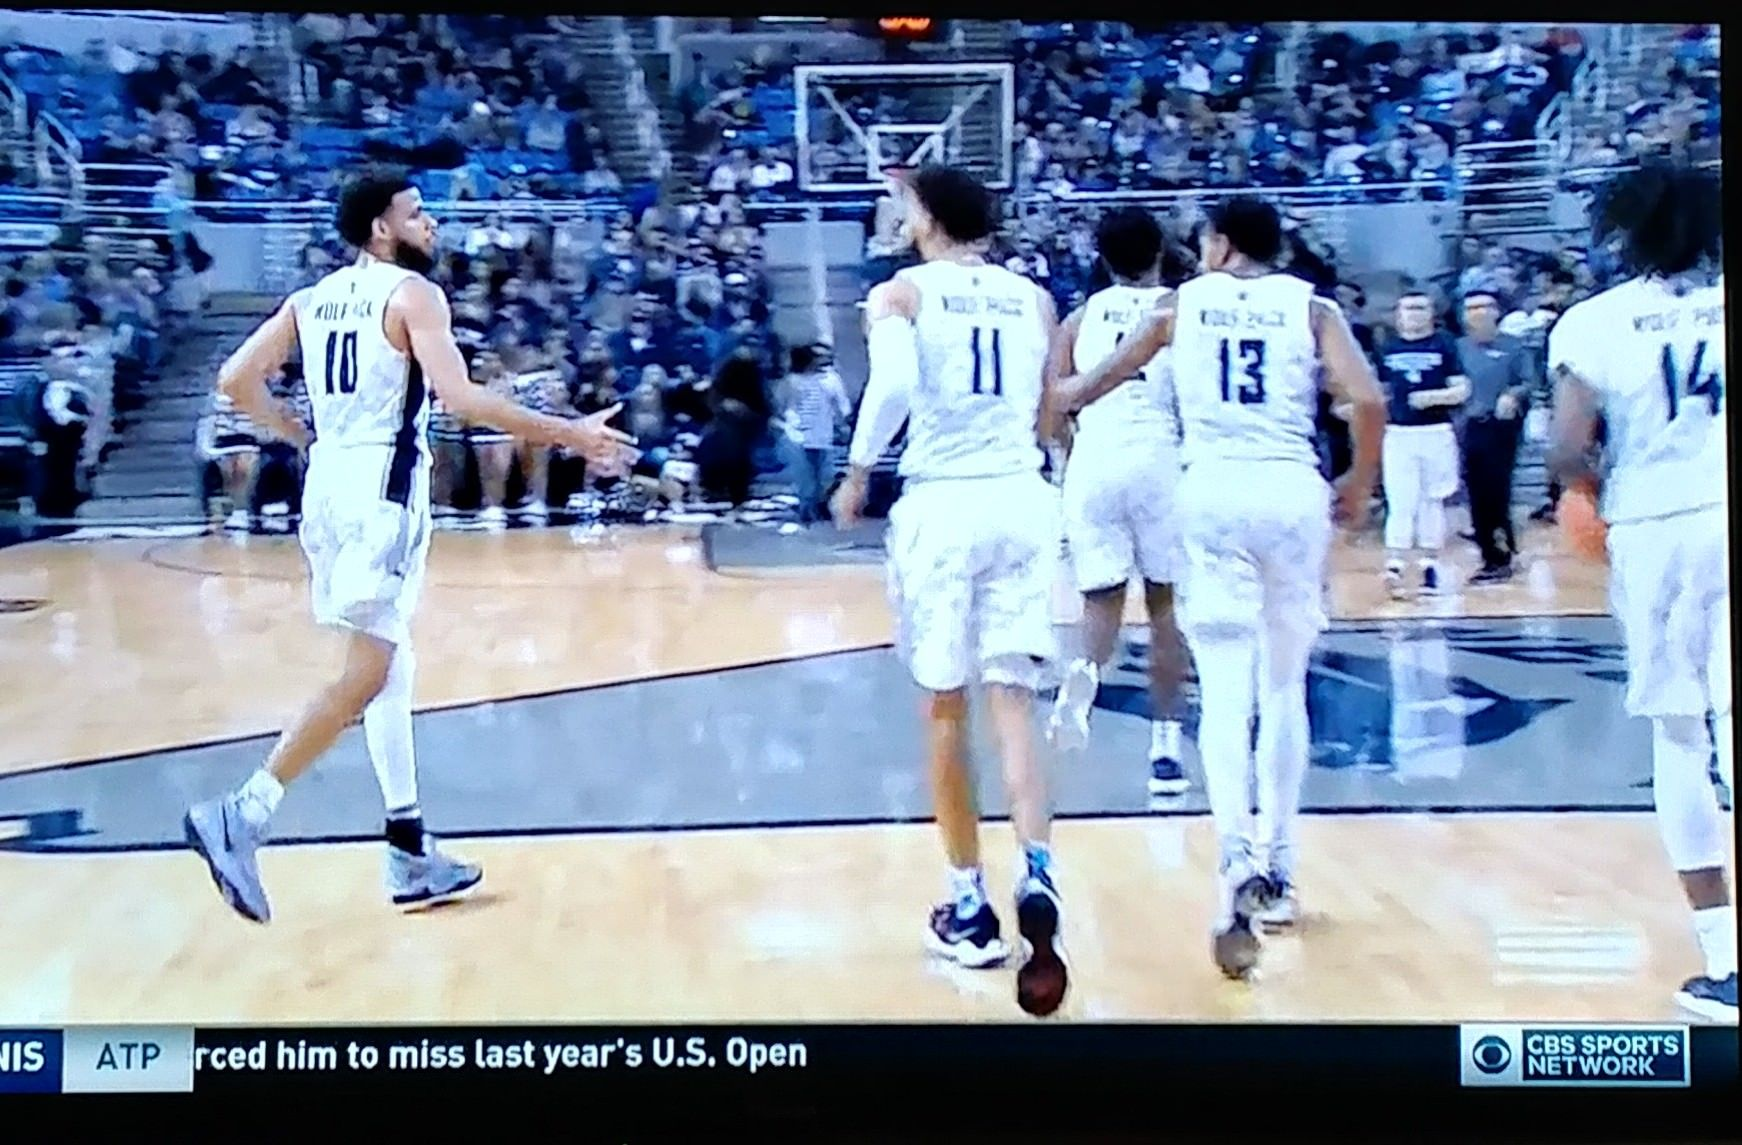 U of Nevada basketball team runs to timeout in consecutively